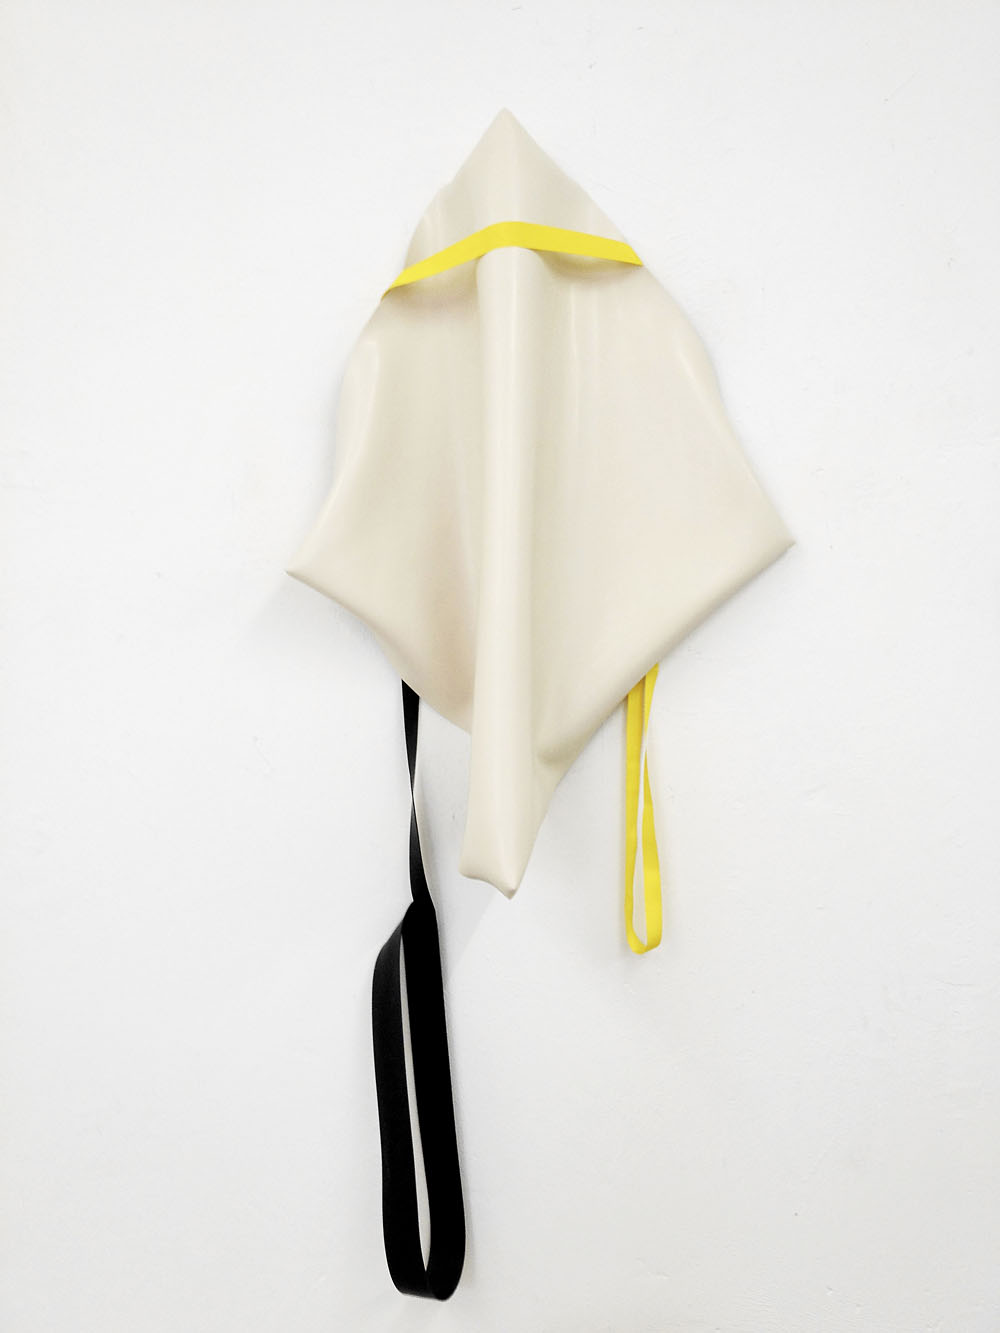 Nonmember with yellow and black, 2011, rubber, nylon, 145 x 80 x 10 cm